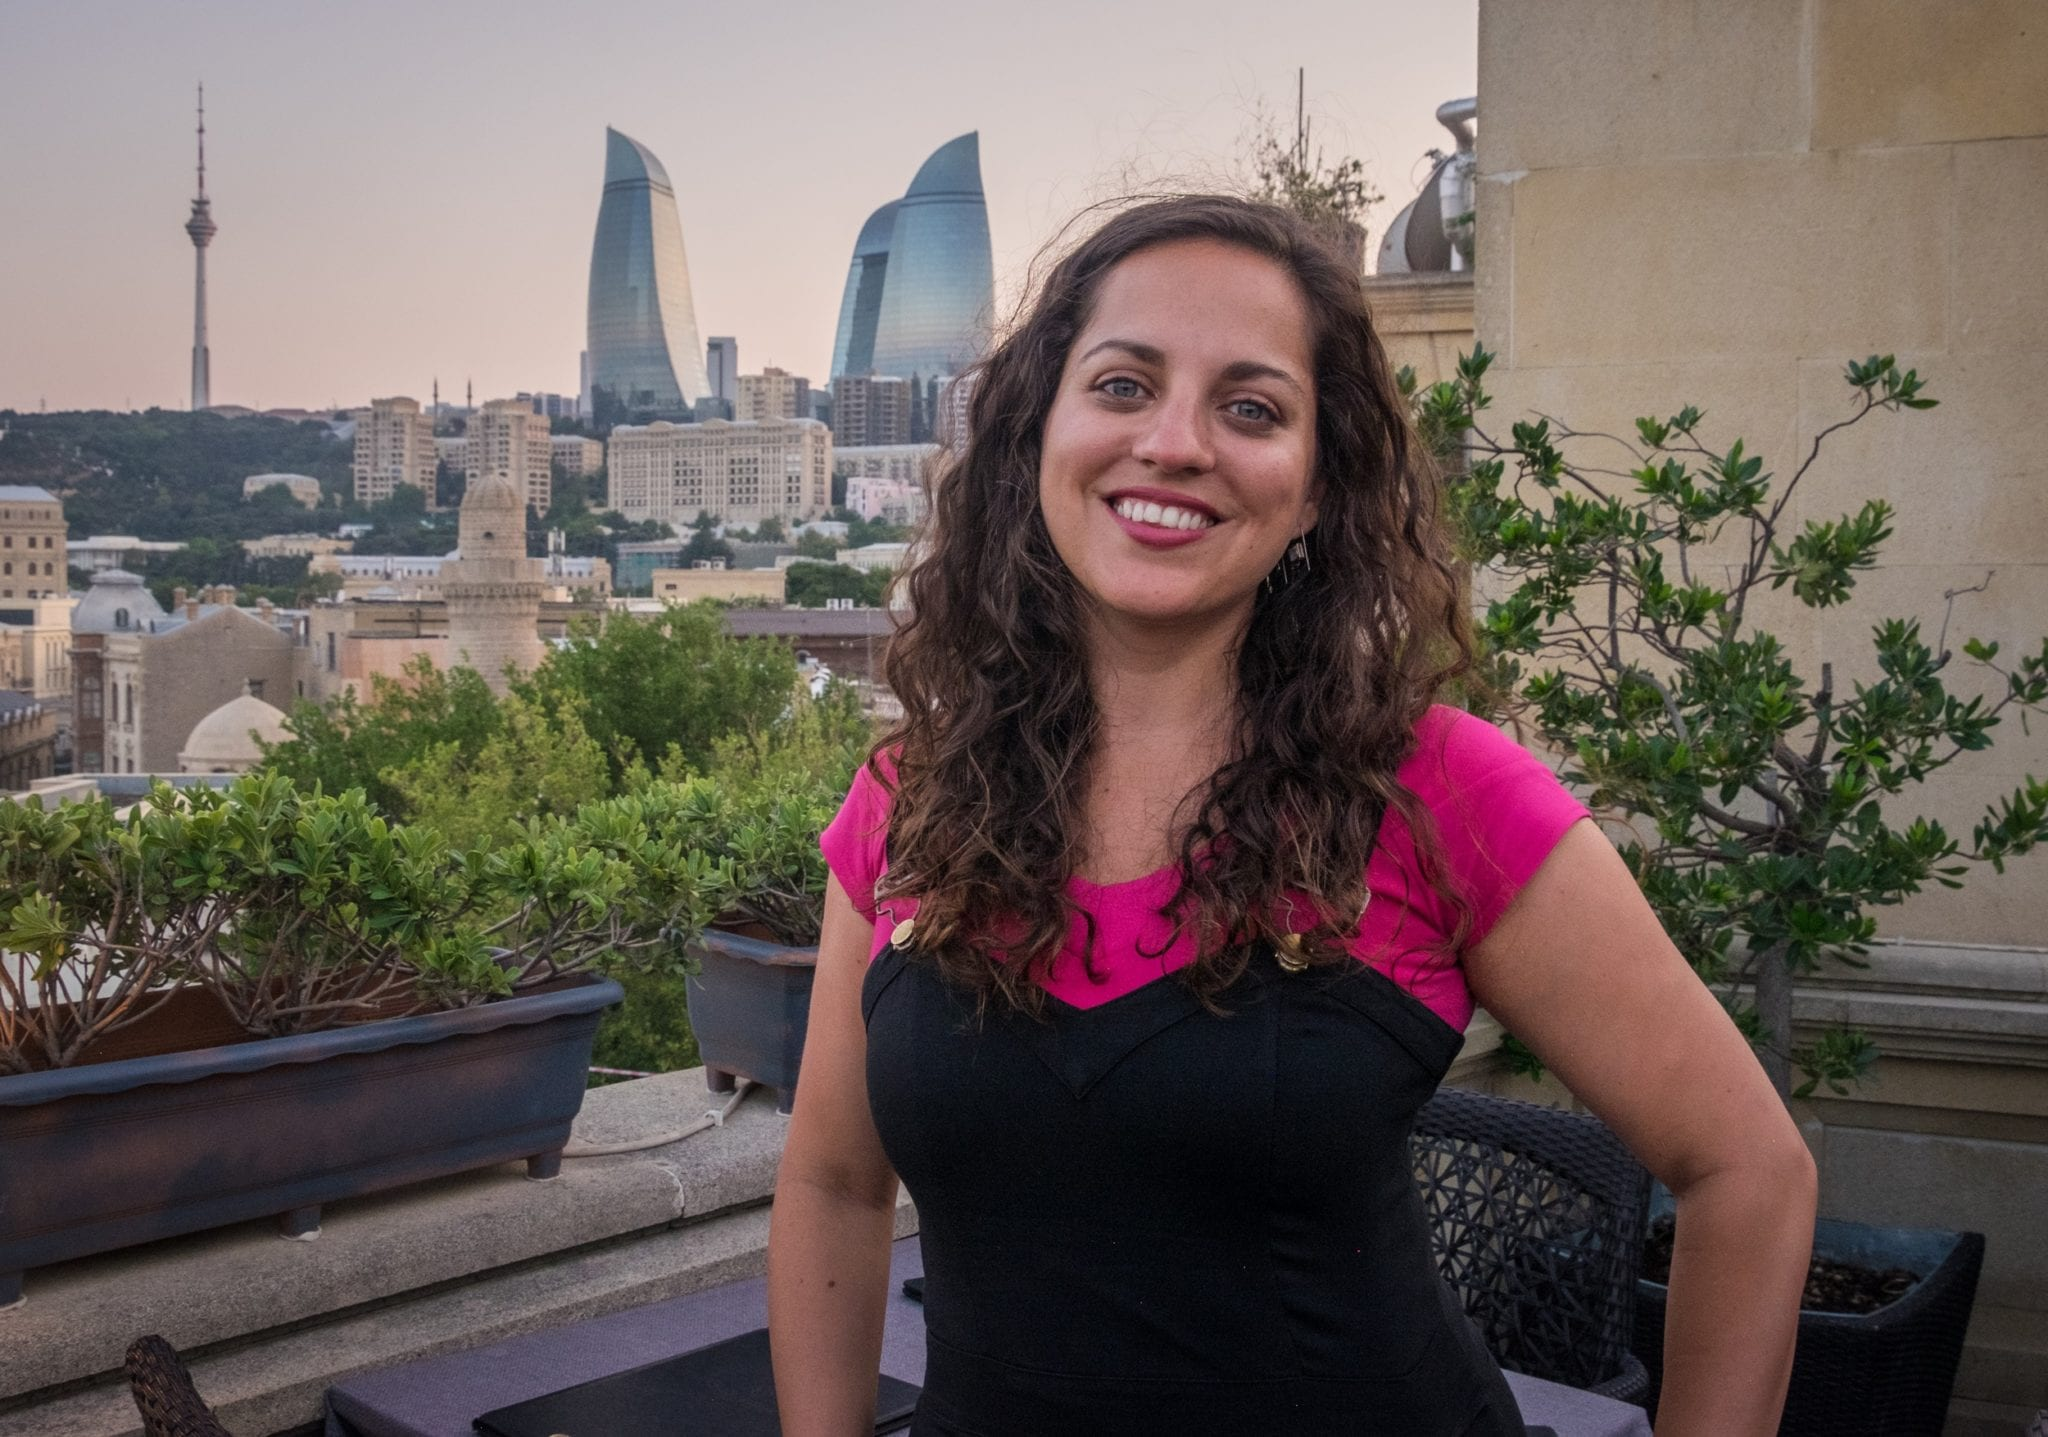 Kate poses on a balcony in front of the three flame-shaped towers of Azerbaijan as the sky turns pink at dusk.